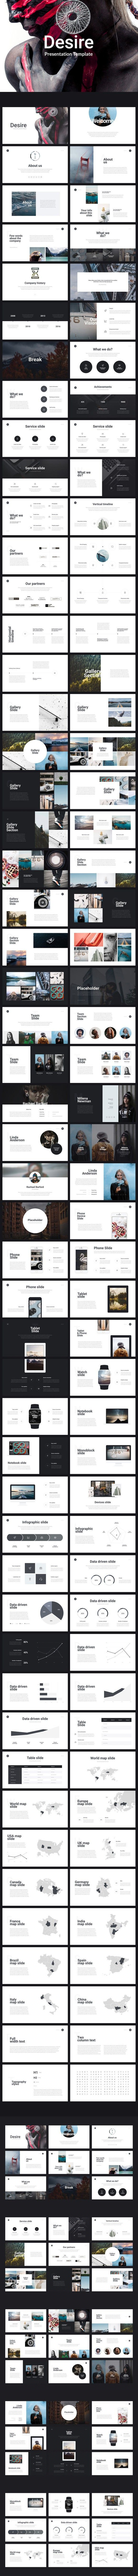 Desire Keynote Template. PowerPoint Templates. $10.00